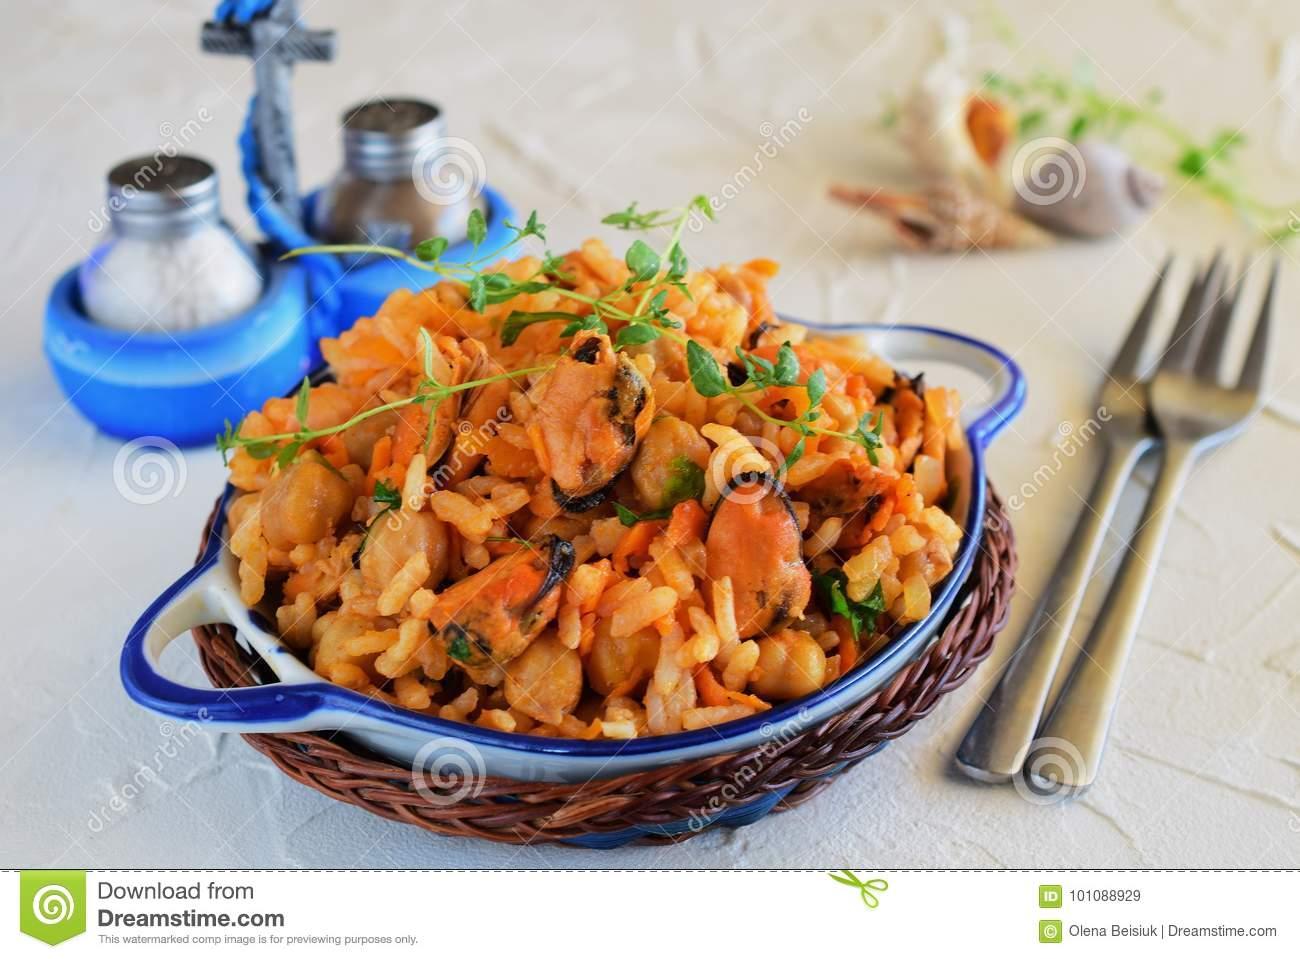 Fried rice with mussel, carrot and onion